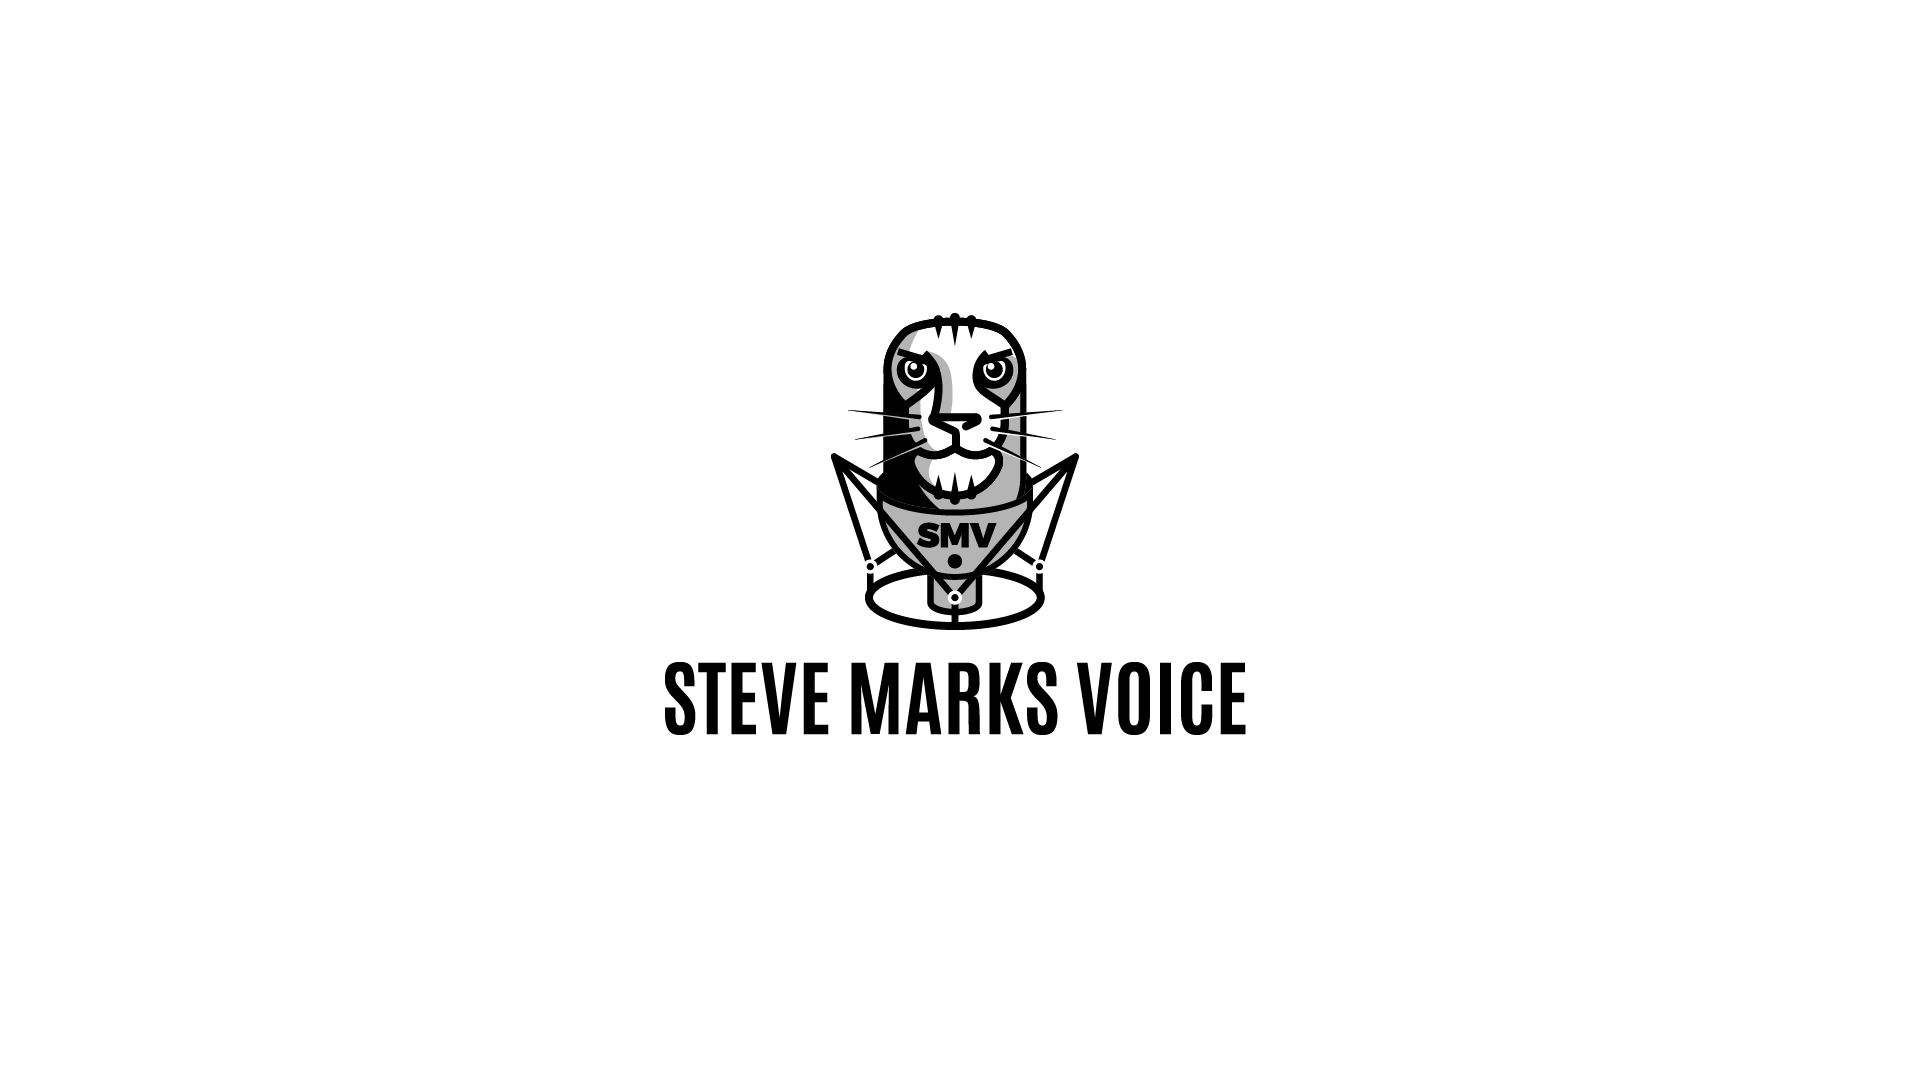 Voice over talent needs an engaging logo to win new business!